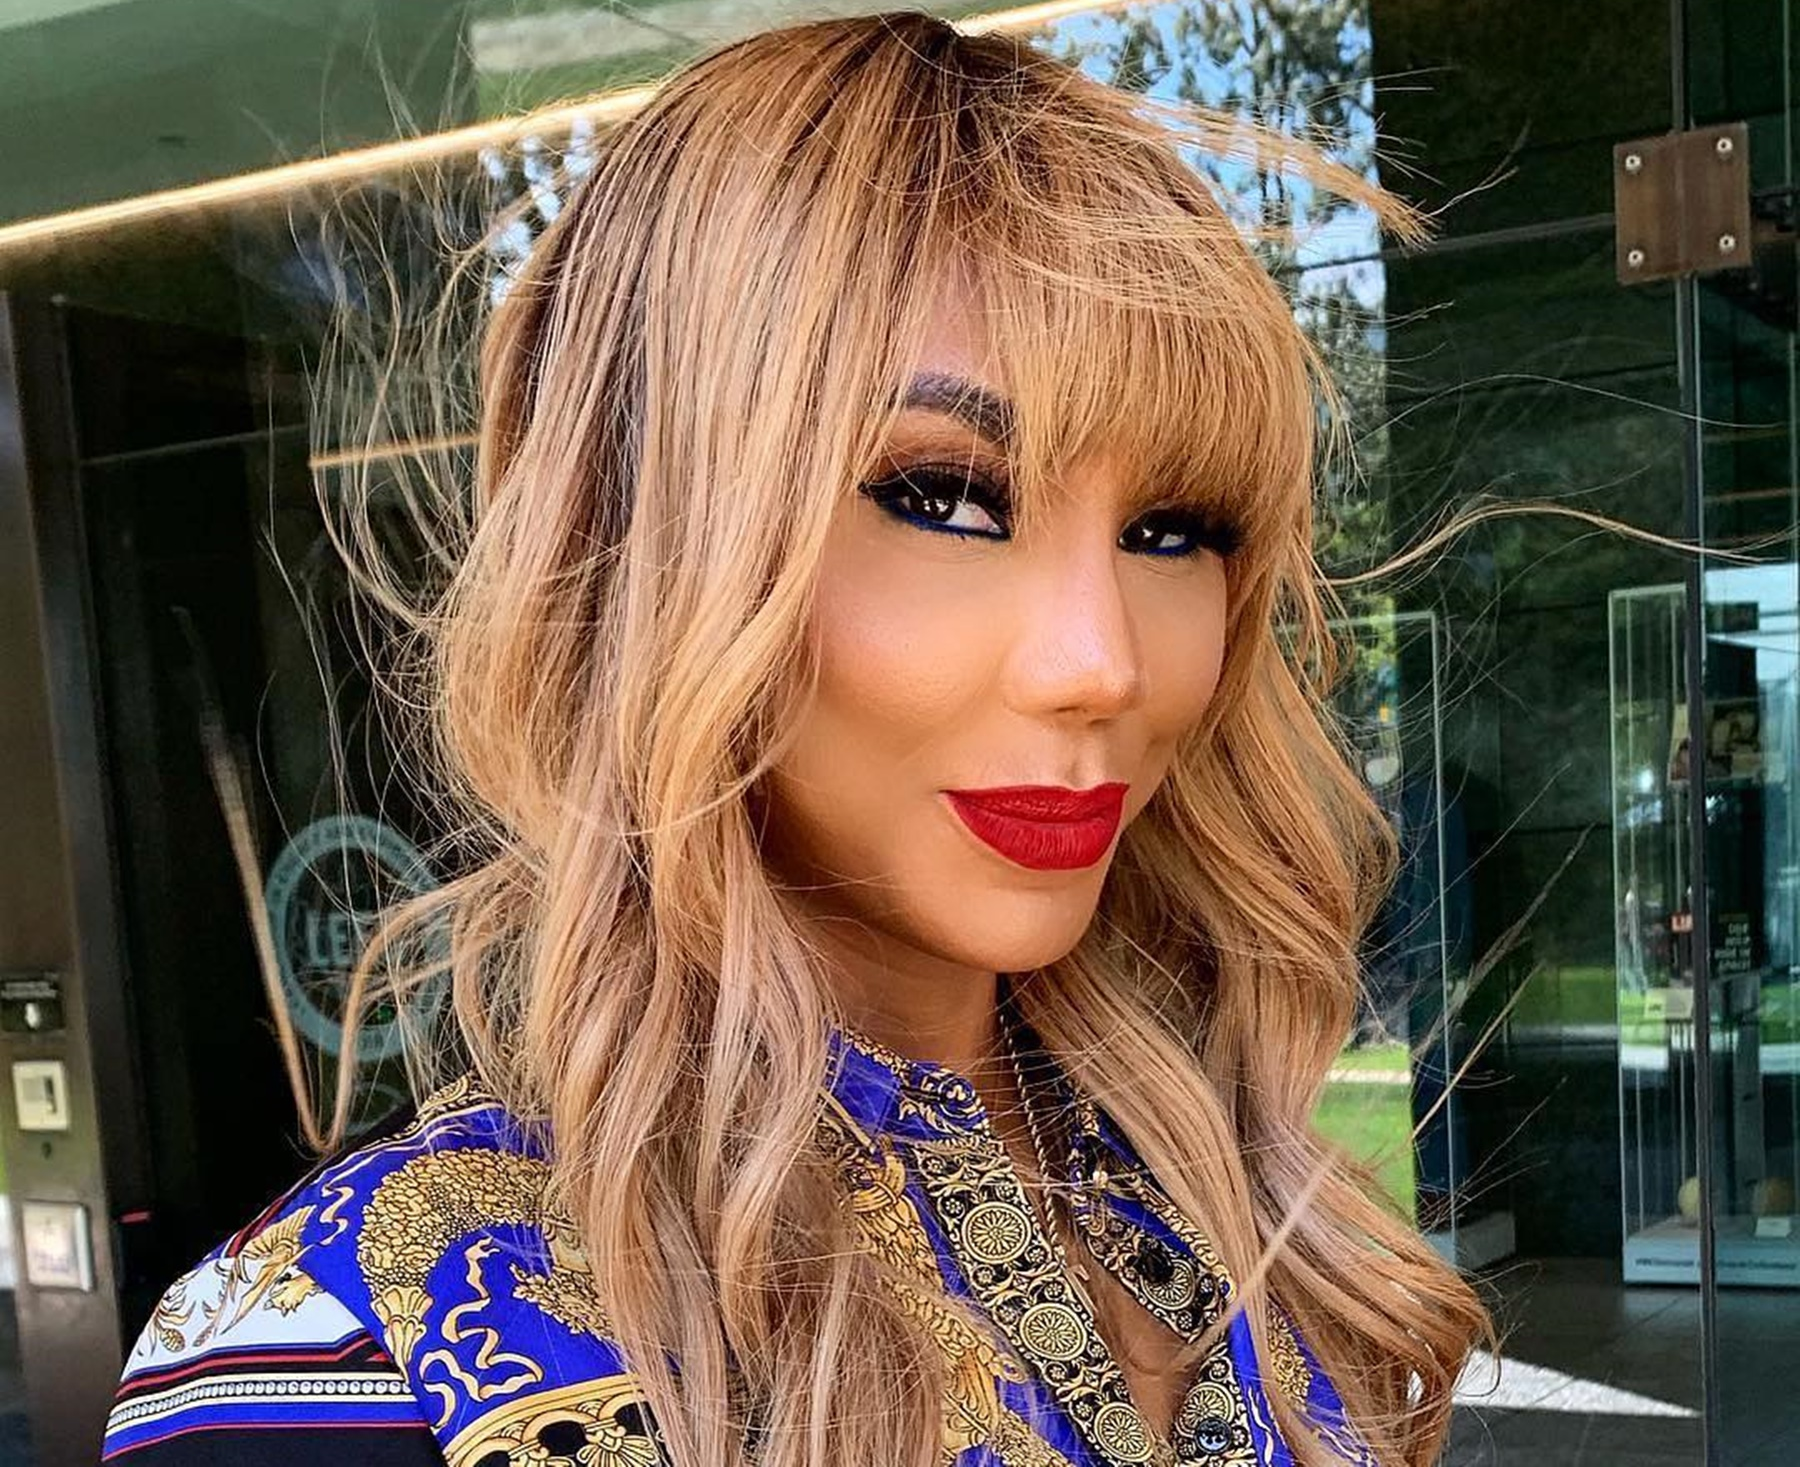 Tamar Braxton's BF David Adefeso Addresses The Trip To Nigeria For His Mother's Birthday Party - Check Out The New Pics & Videos